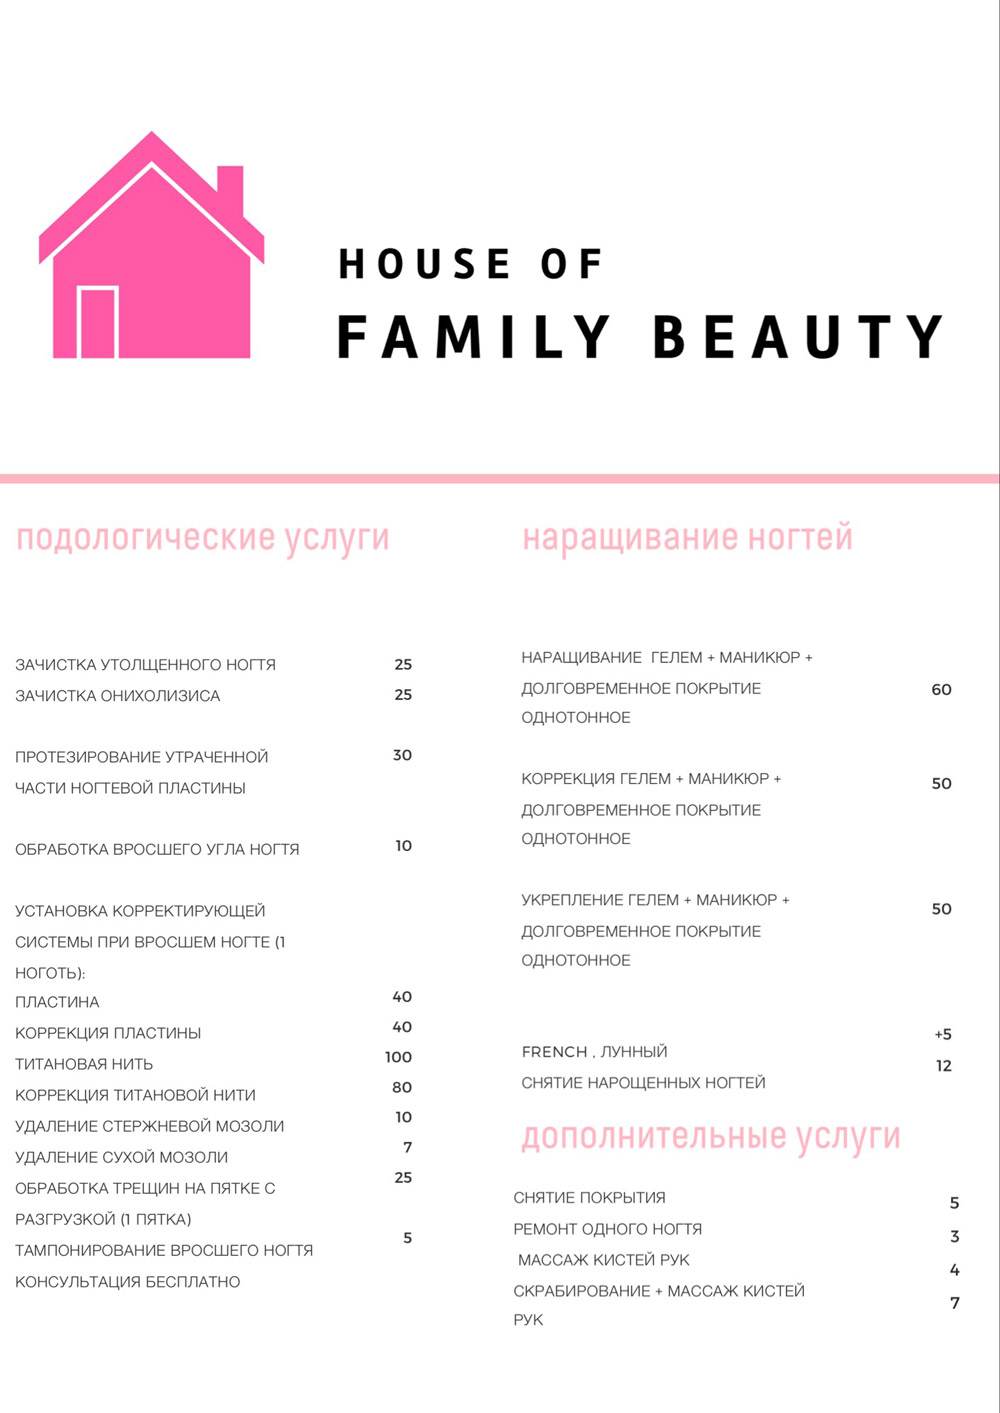 Family beauty bar